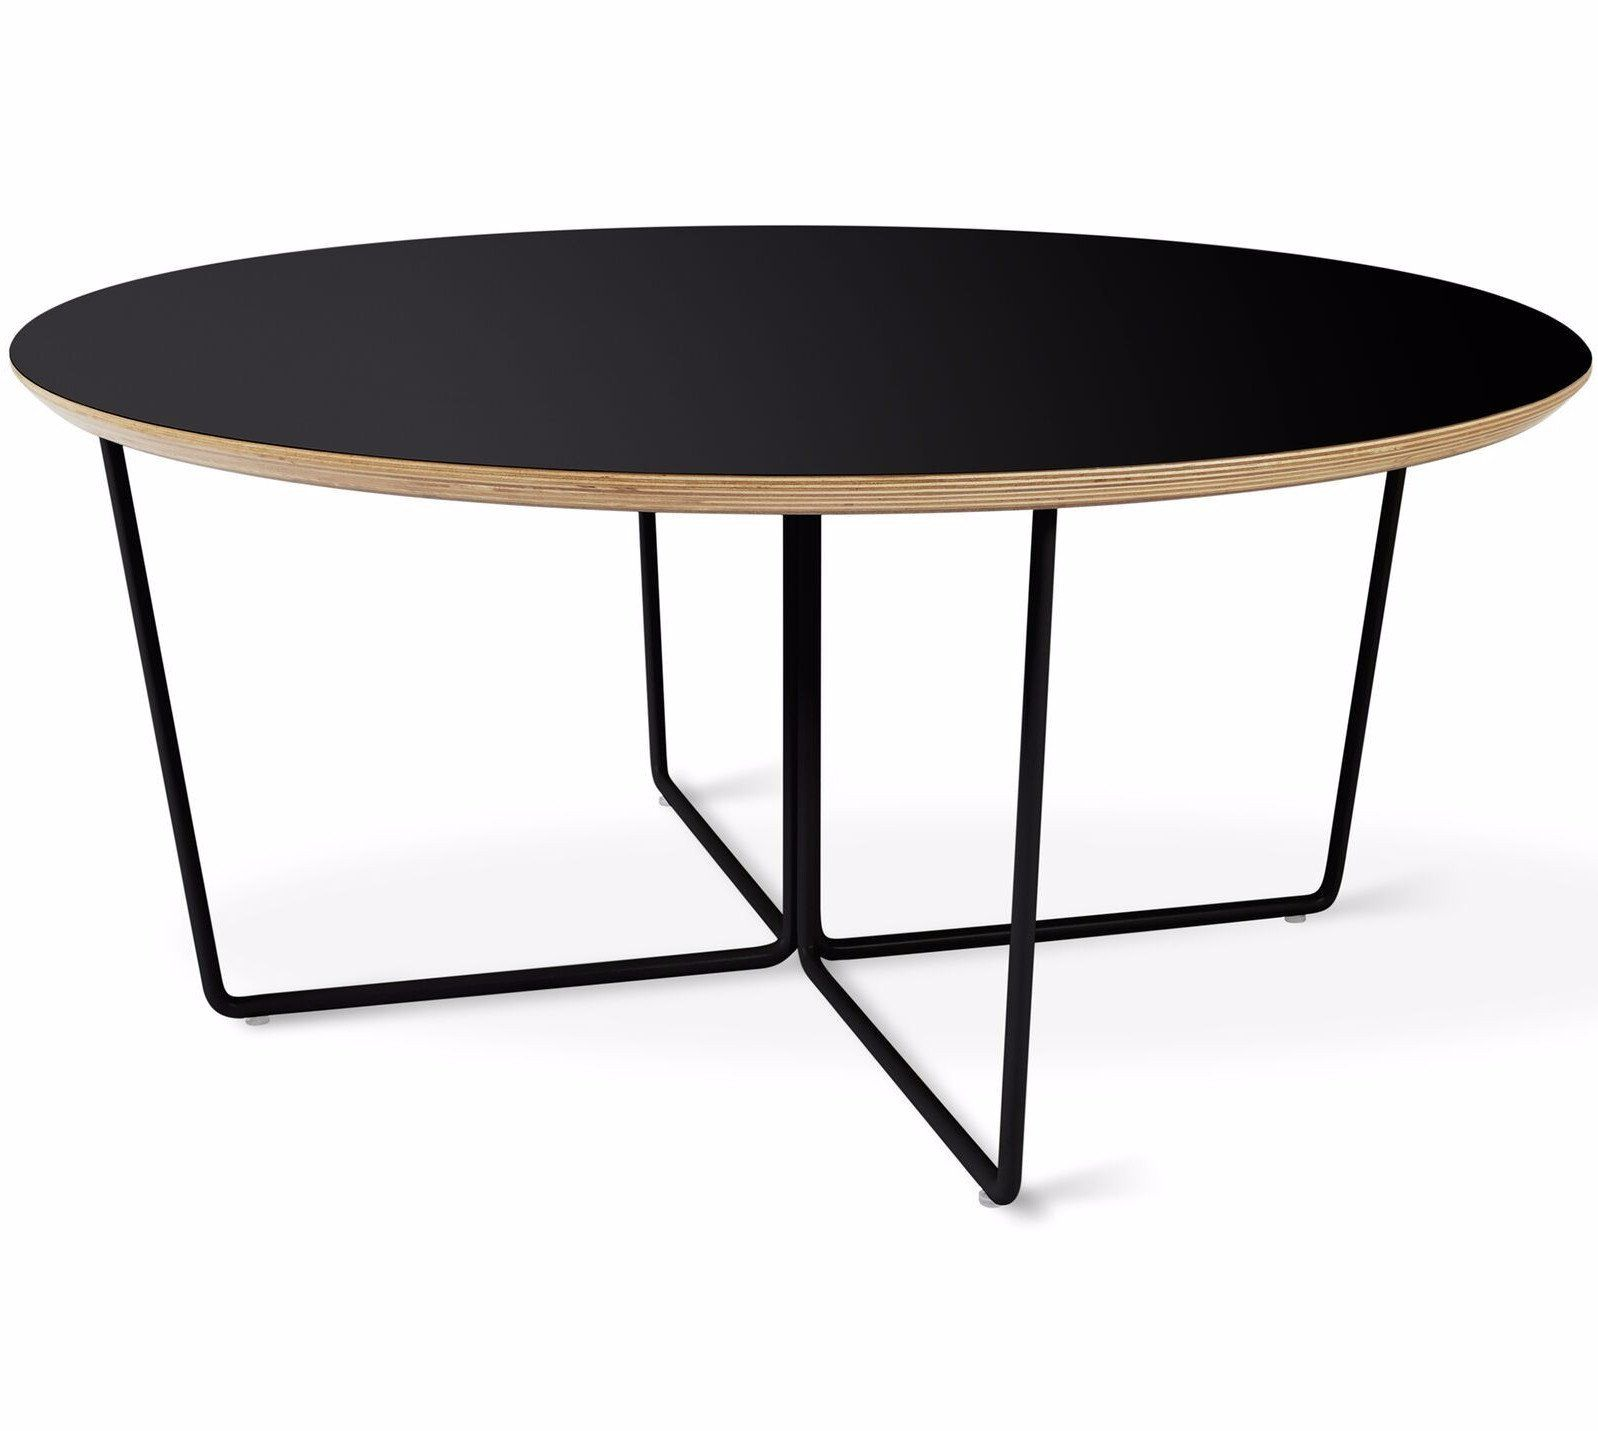 Array Round Coffee Table In Black Design By Gus Modern Coffee Table Round Coffee Table Oval Coffee Tables [ 1431 x 1598 Pixel ]